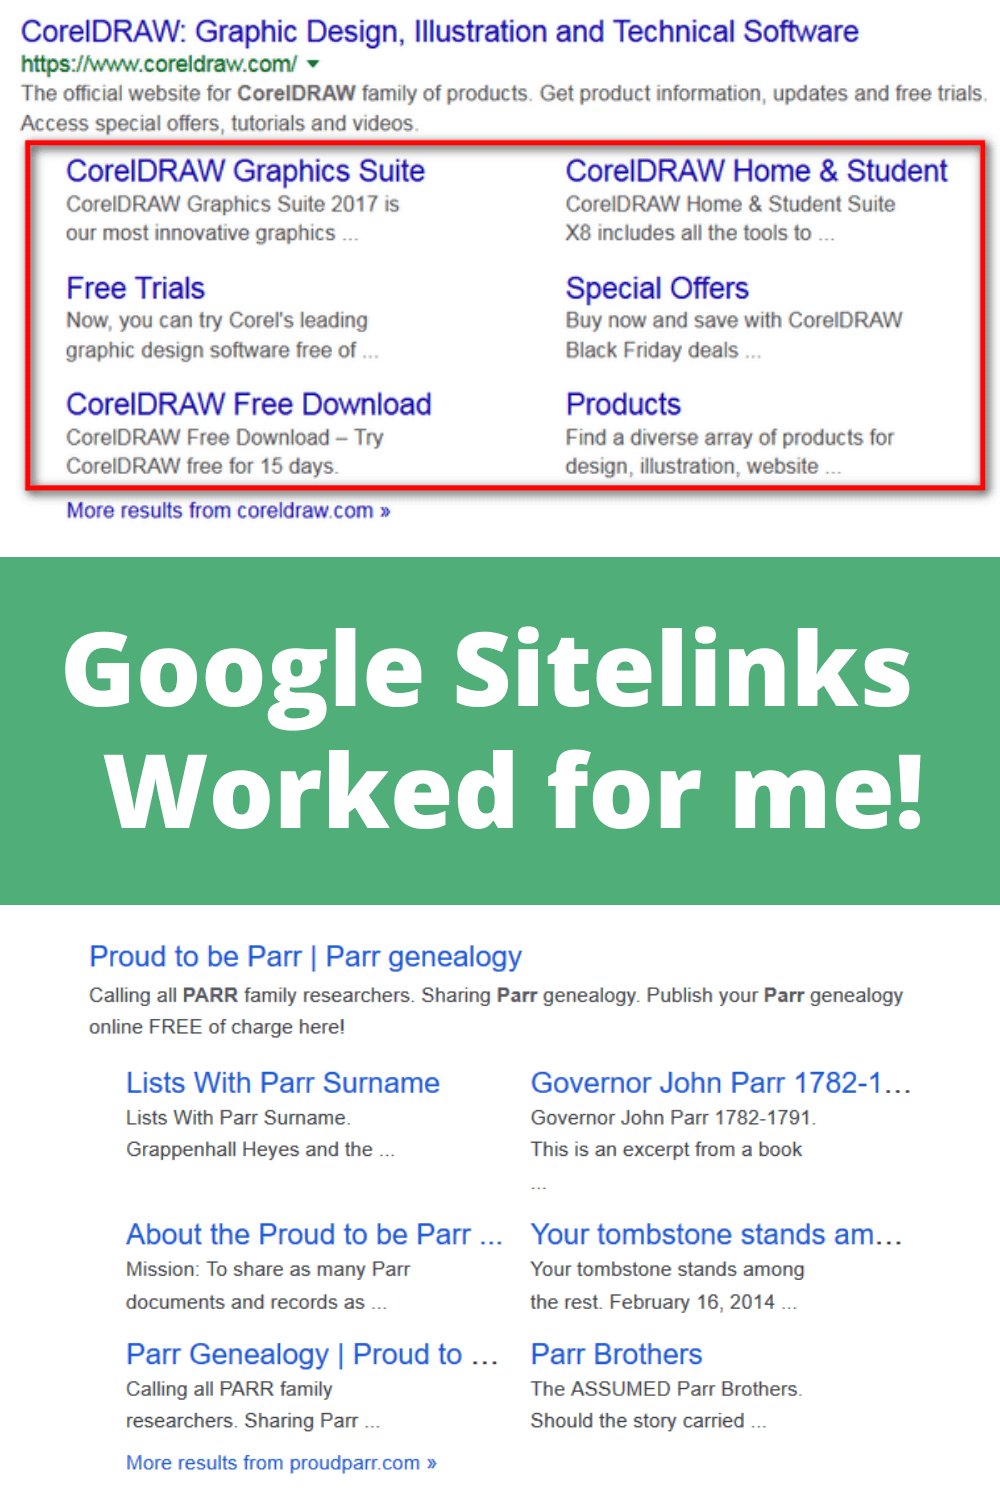 Google sitelinks worked for me!